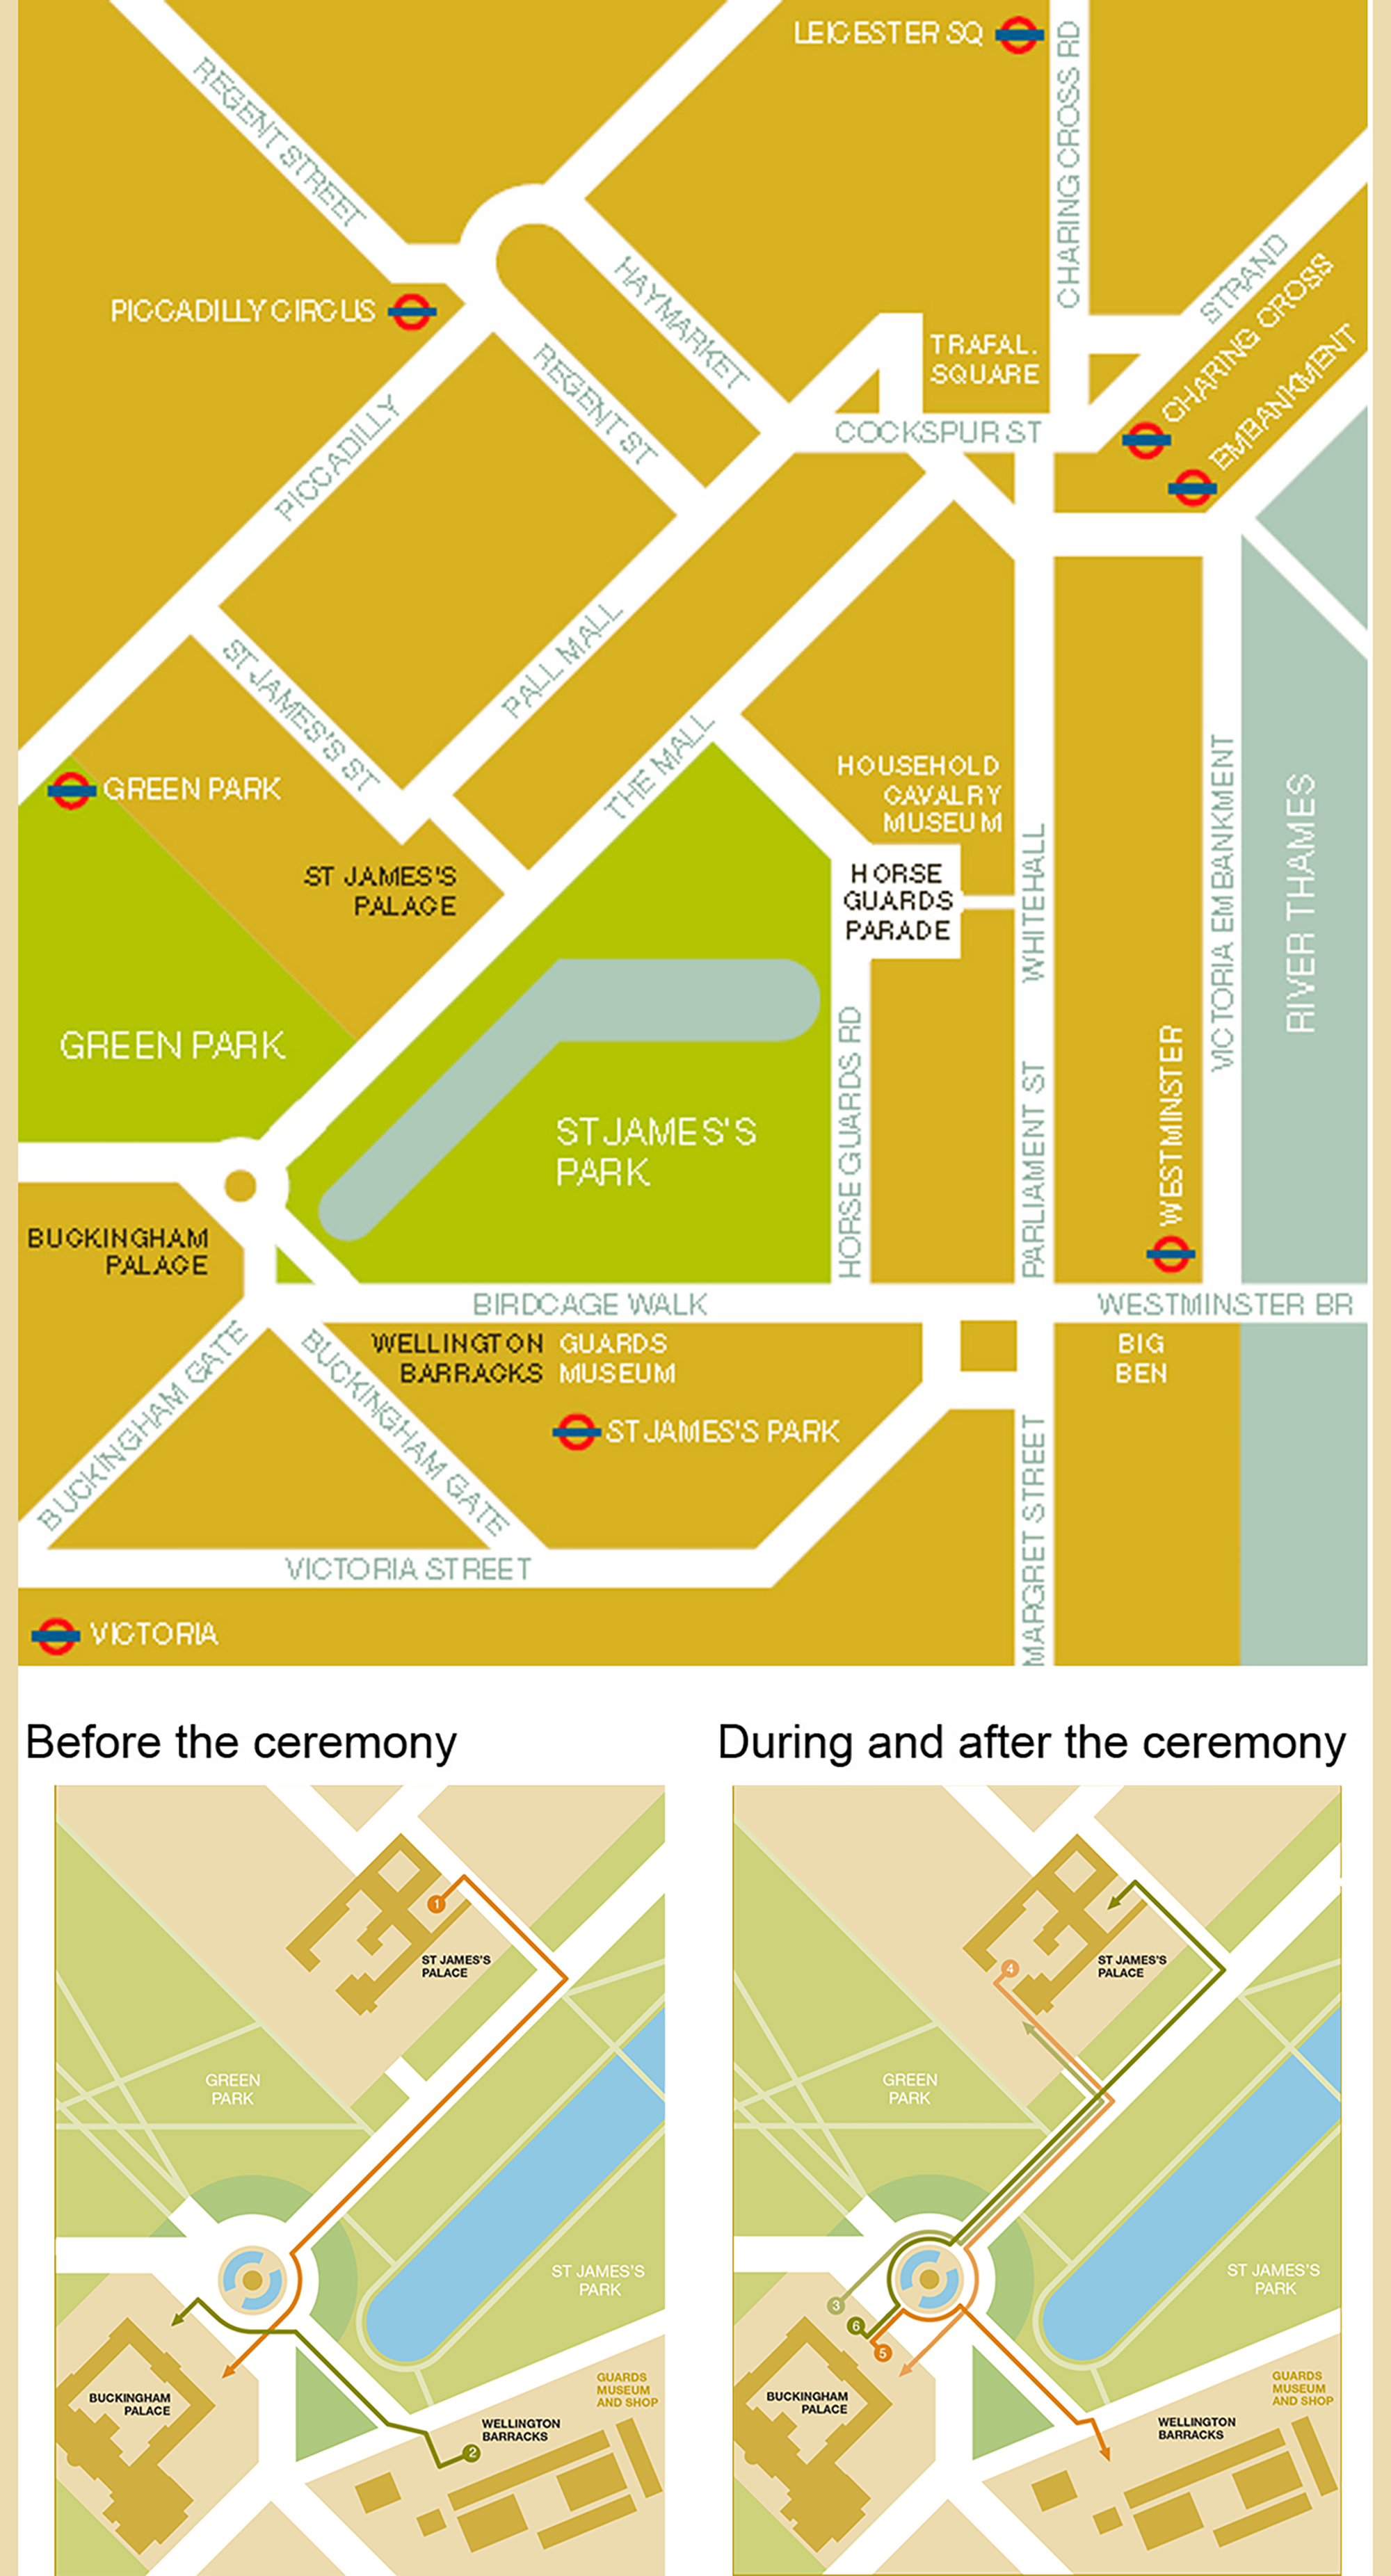 The Ceremony in detail - Changing the Guard - Ceremonial Events